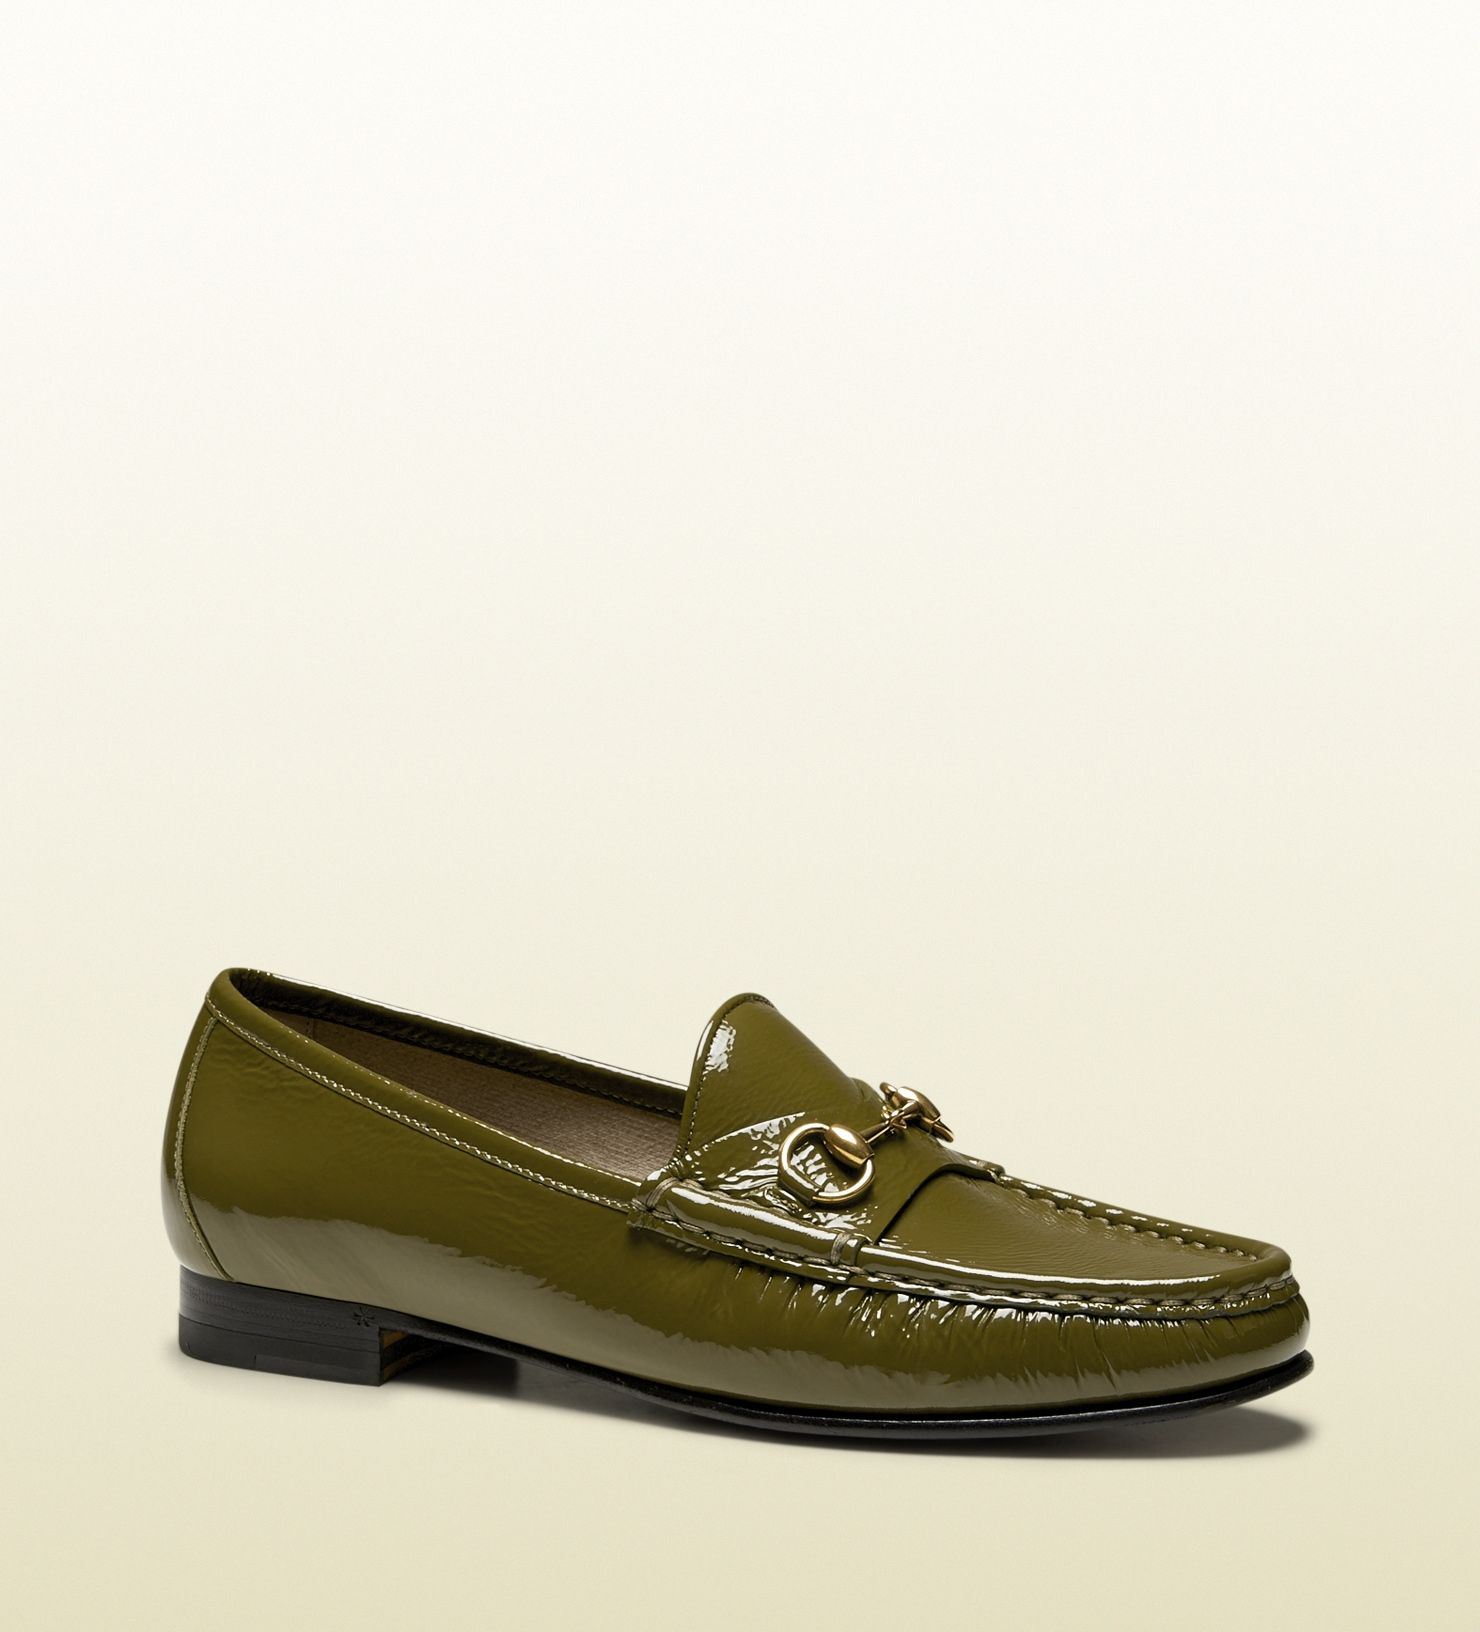 70de8c4ef93 Gucci - 338348 AB800 2402 - horsebit loafer for women - women s olive green  patent leather Made in Italy 1953 collection  60th anniversary tag horsebit  ...